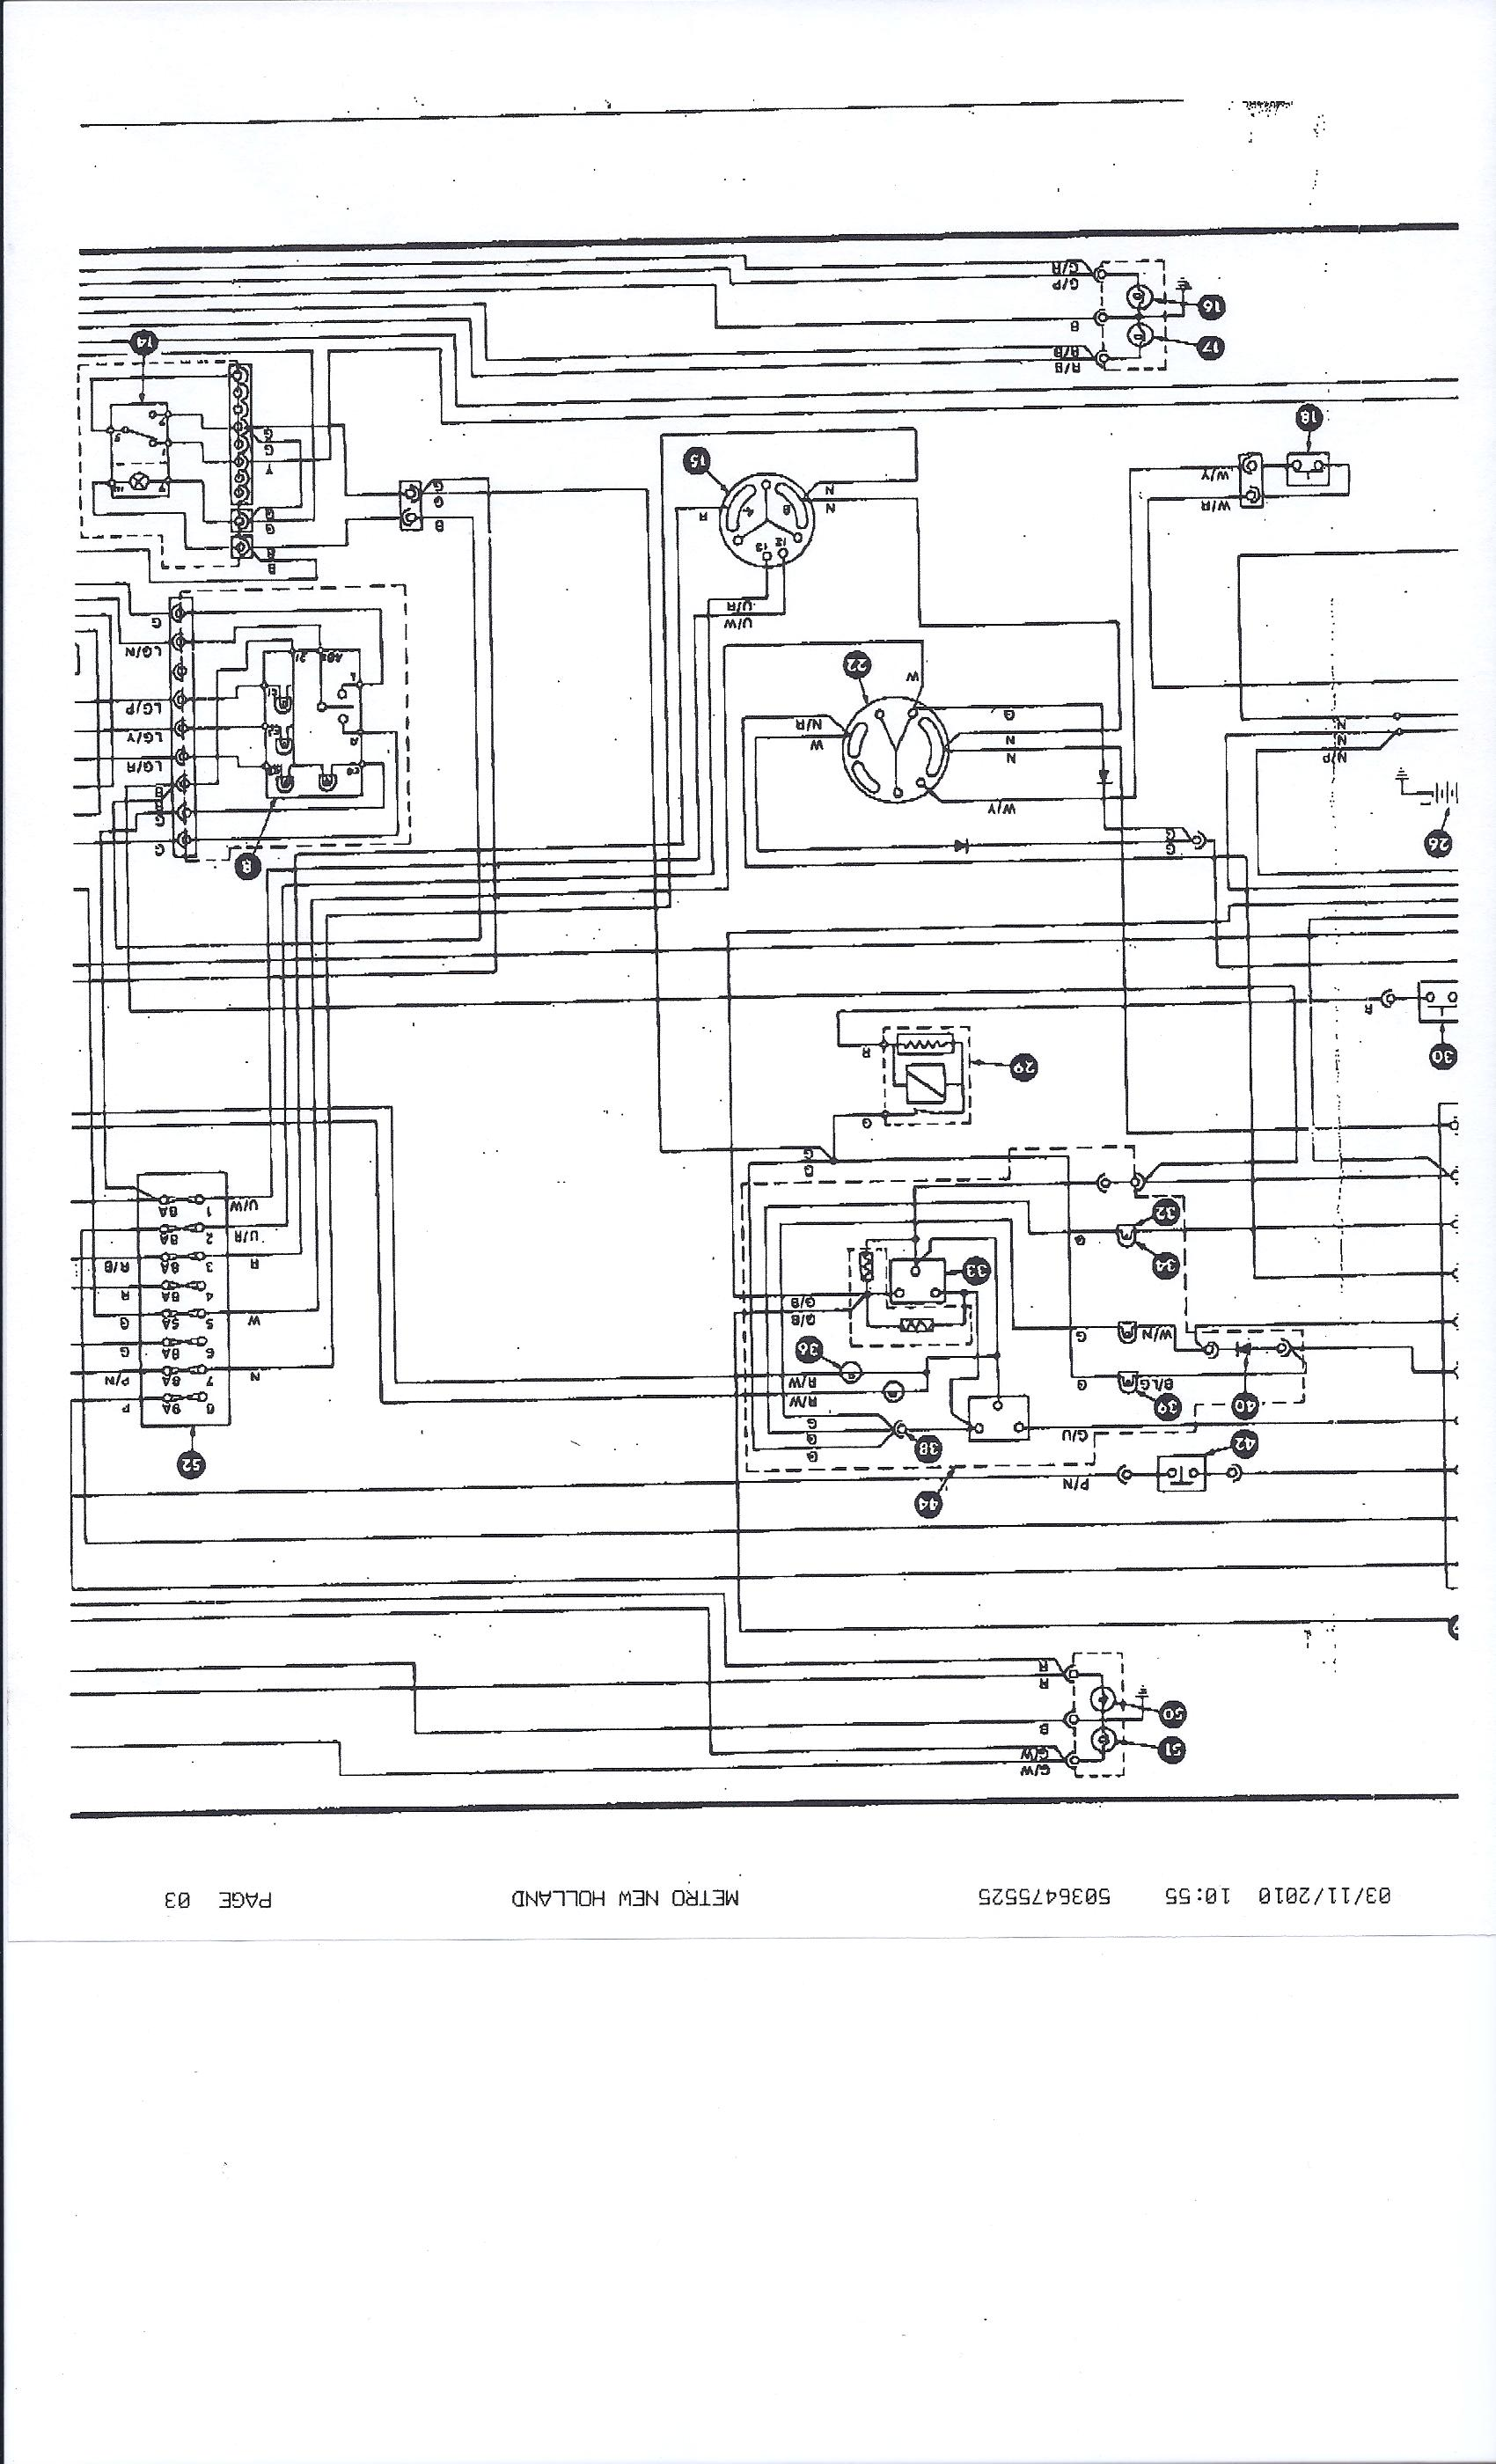 wiring diagram for a ford tractor 3930  u2013 powerking co